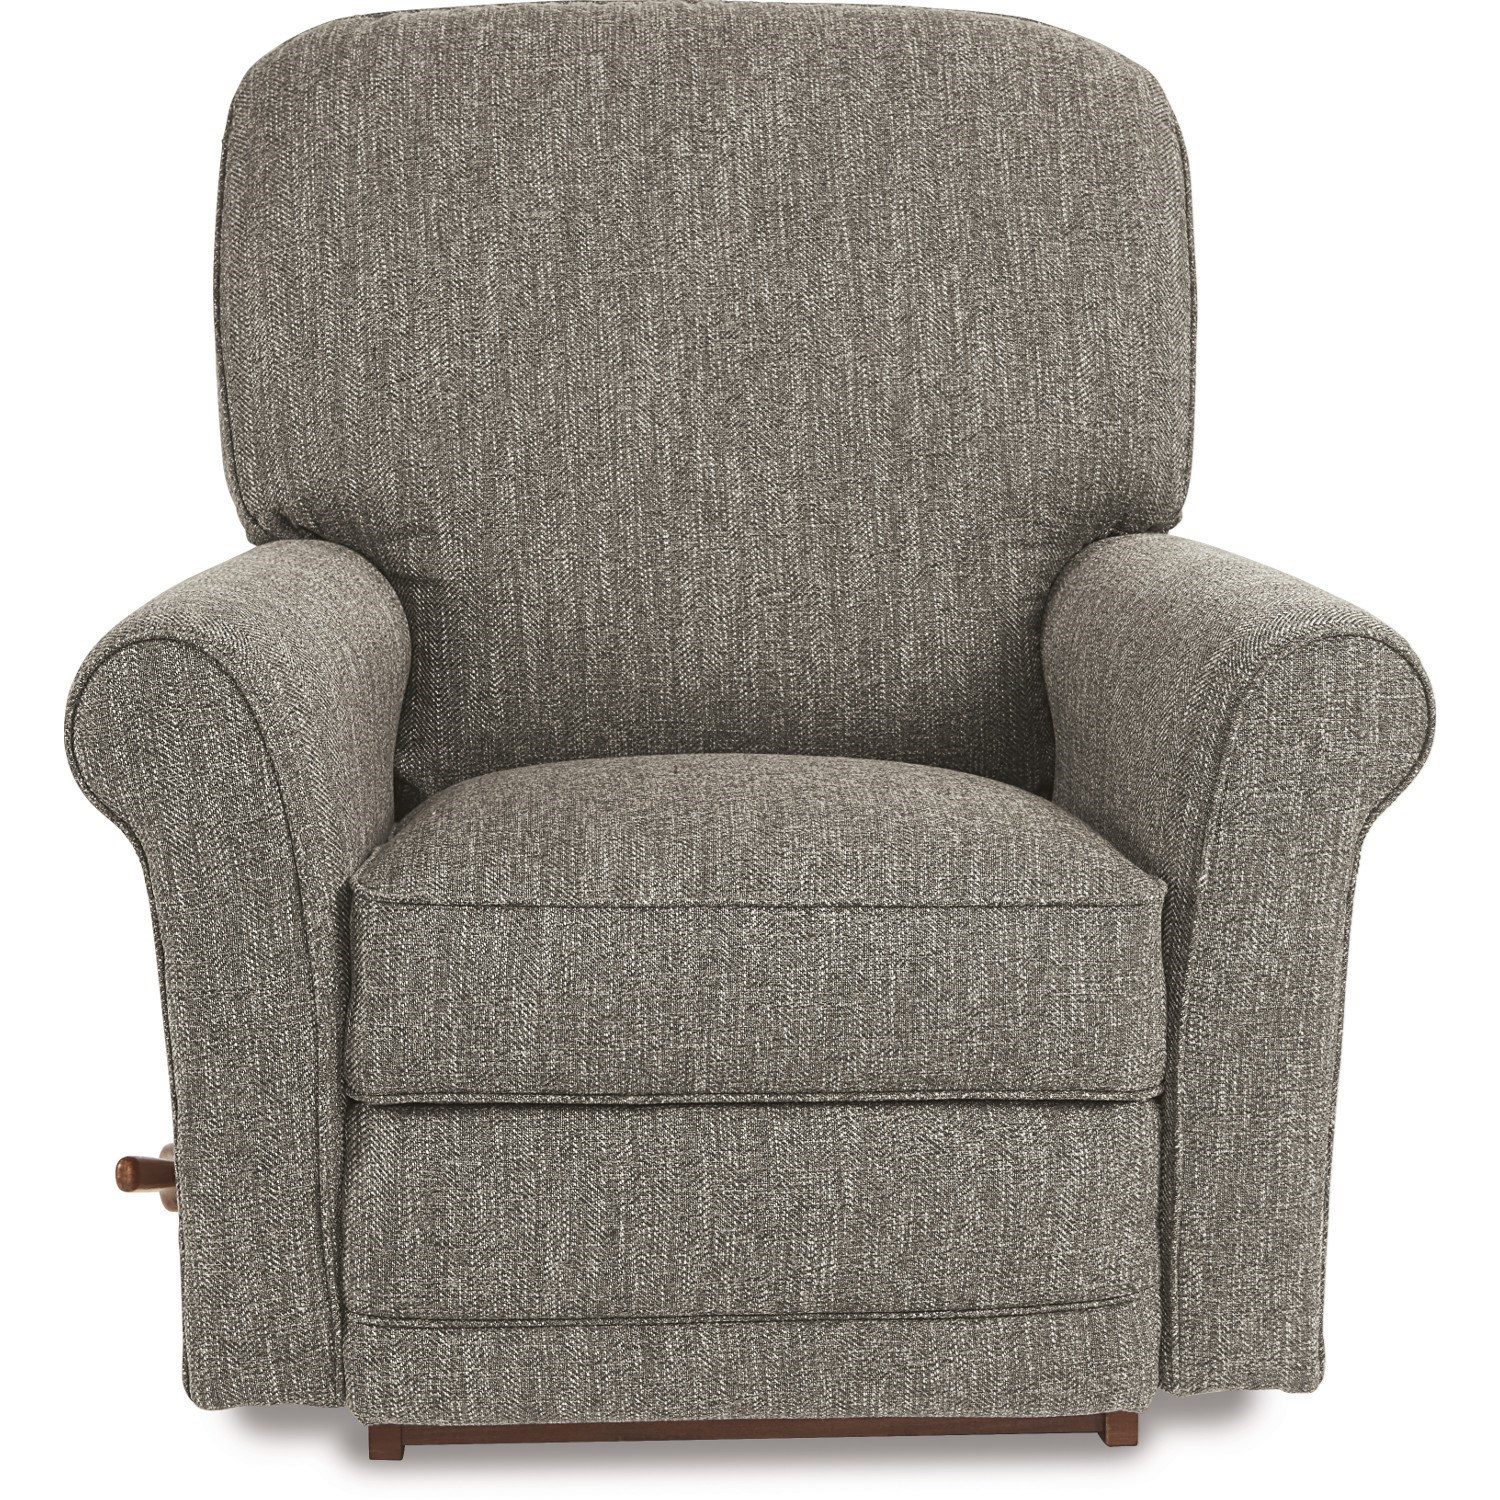 Addison RECLINA-WAY® Wall Recliner by La-Z-Boy at H.L. Stephens